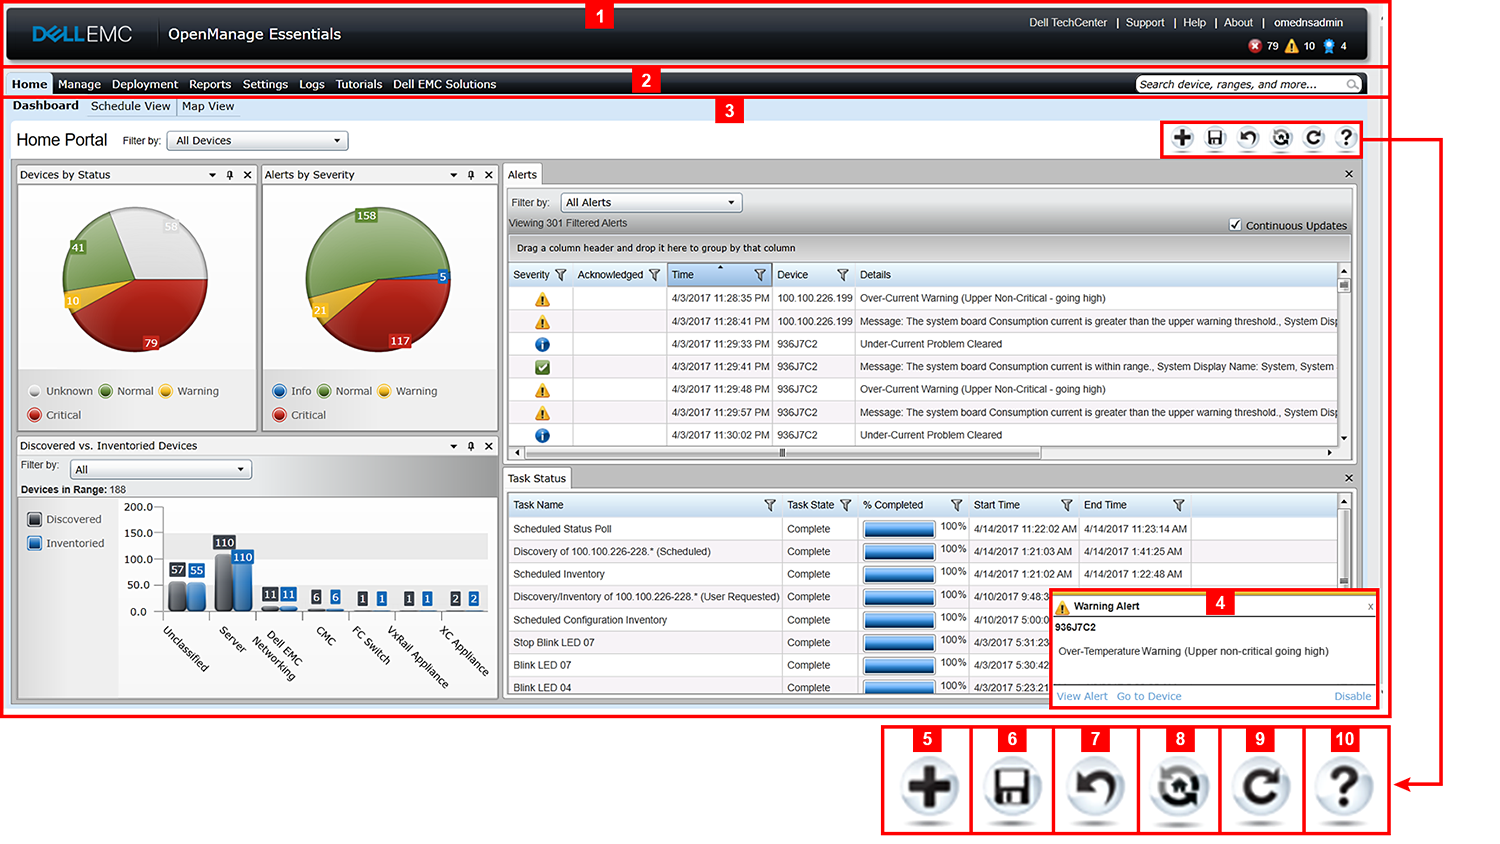 This figure shows the OpenManage Essentials Home Portal layout